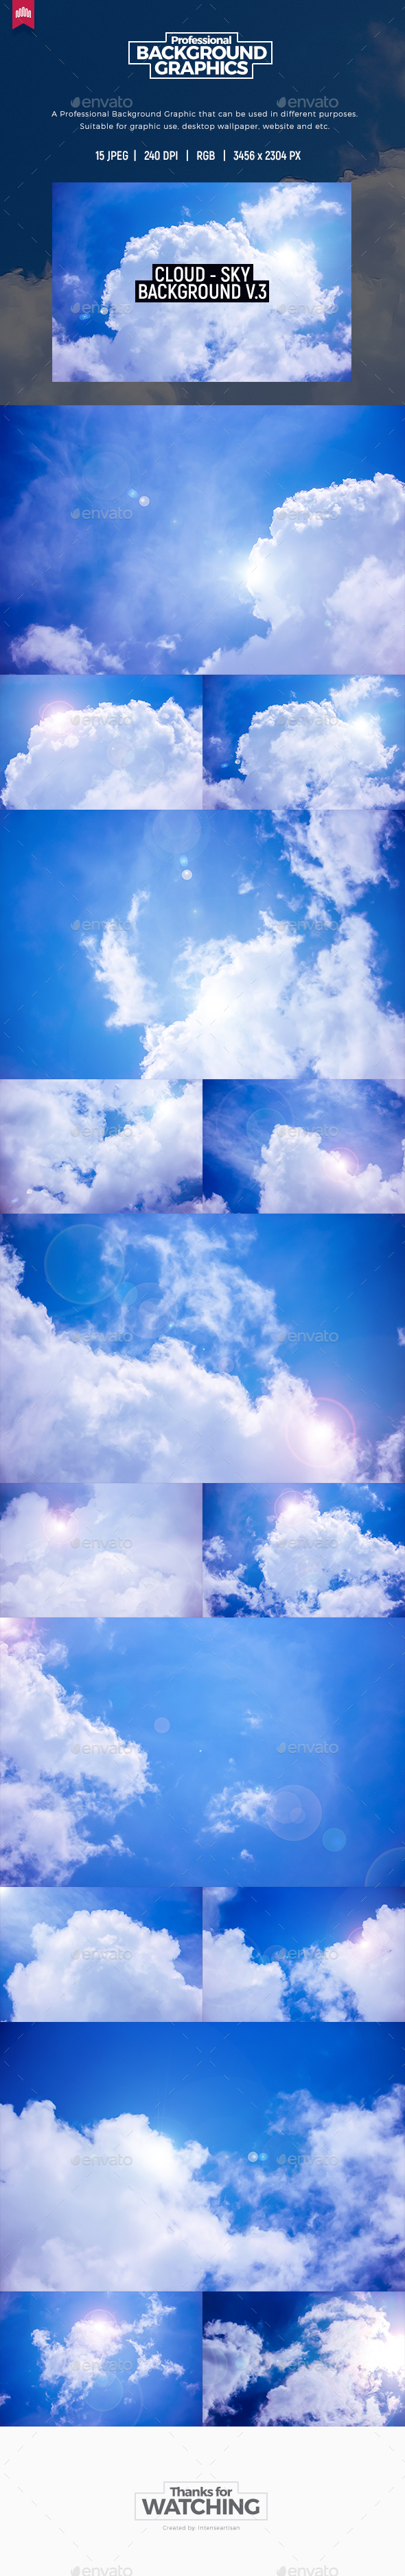 Cloud - Sky Background V.3 - Nature Backgrounds